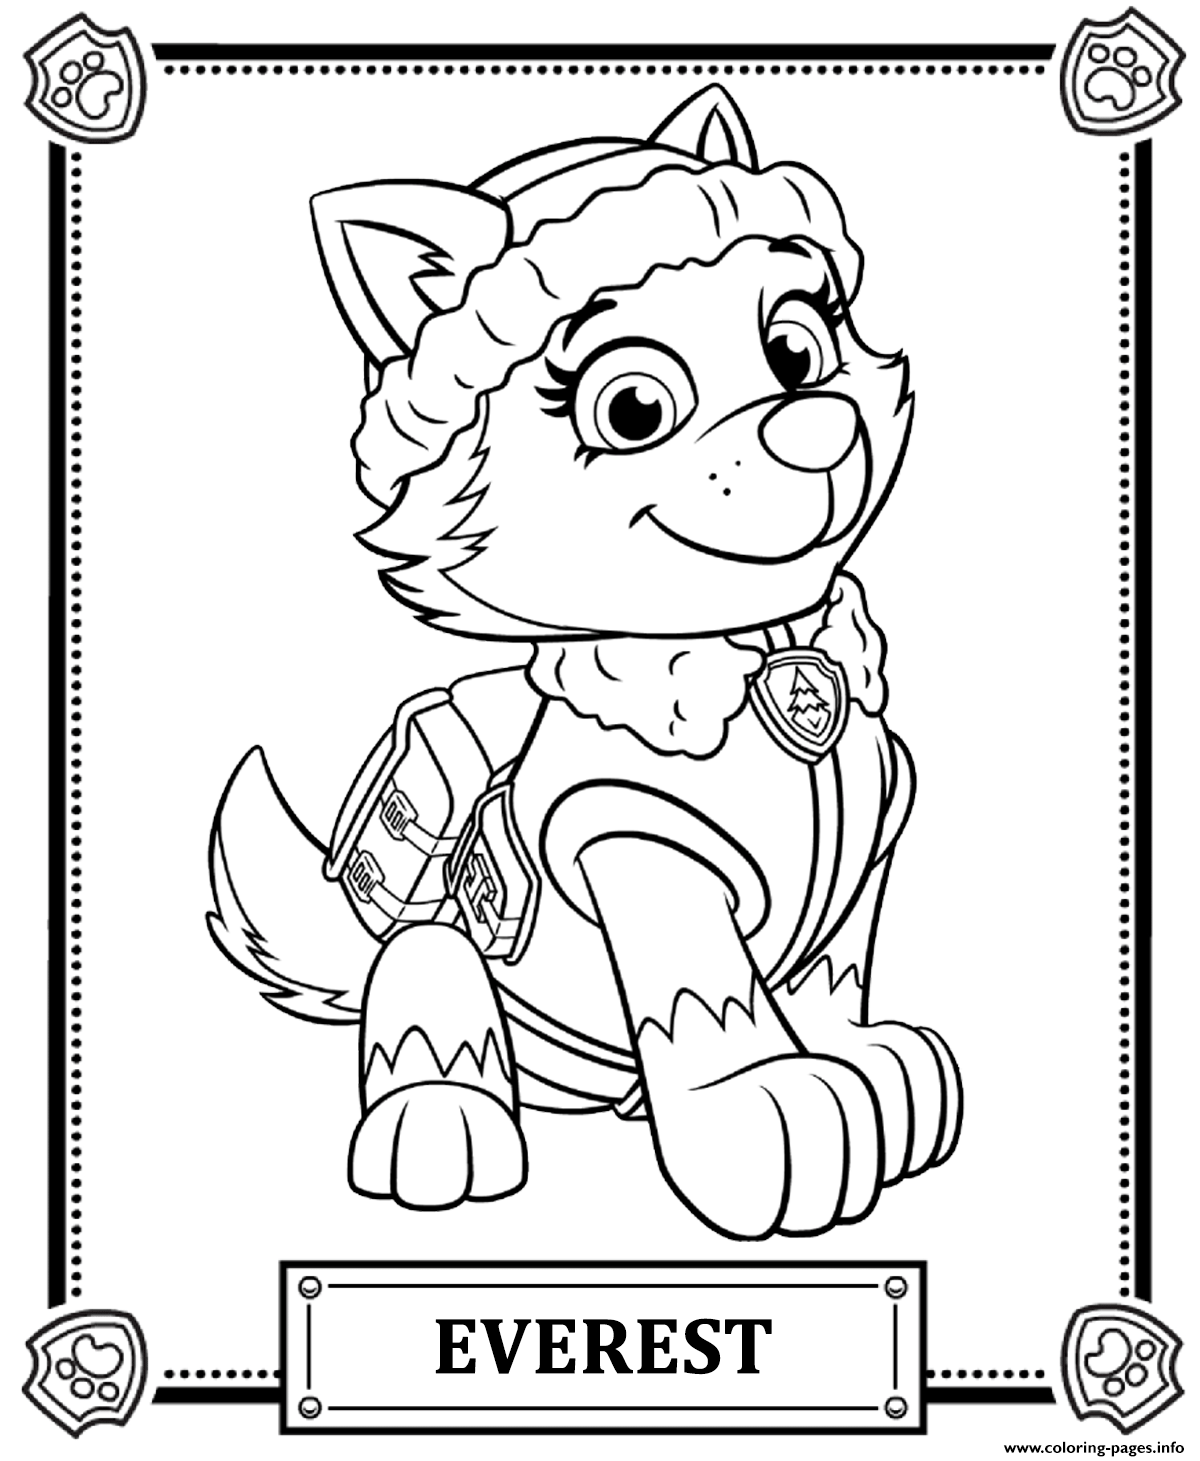 Print paw patrol everest coloring pages | Paw Patrol Birthday ...